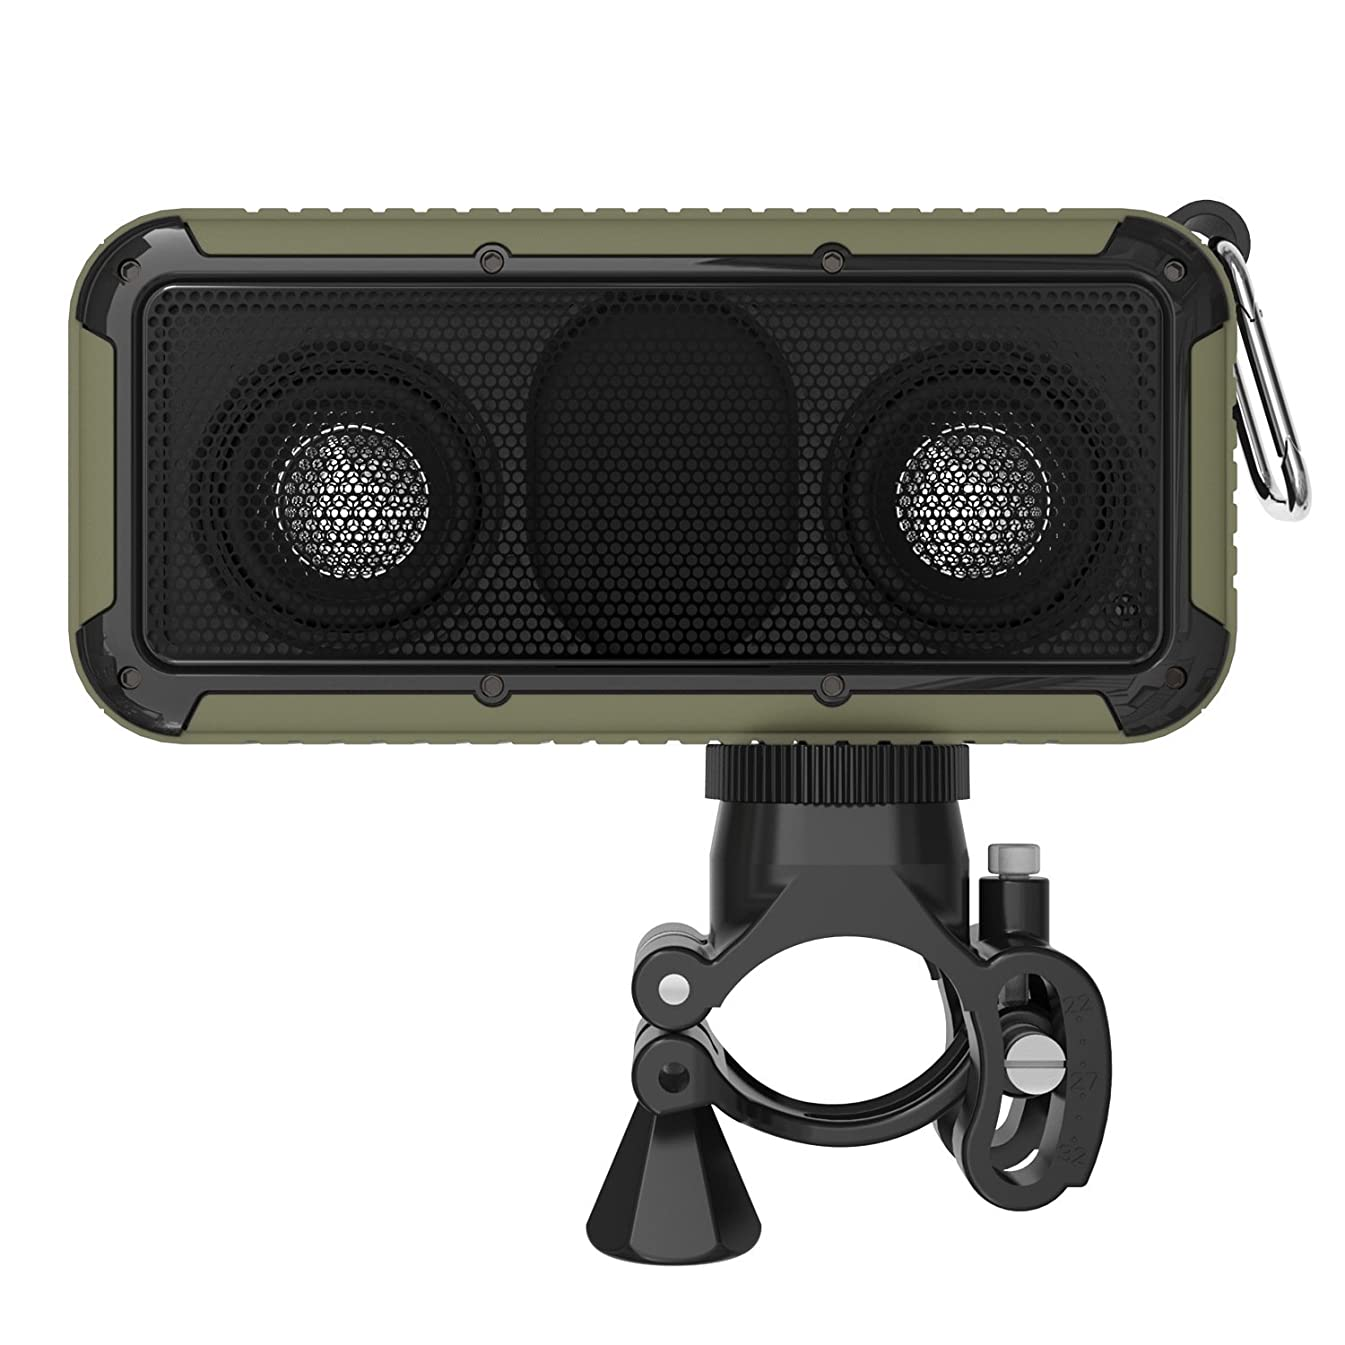 MQHY Bathroom Shower Led Lighting Can Bubble Water Bluetooth Speakers Outdoor Sports Ride Climbing Waterproof Lighting Audio Square Usb Charging Can Call Nfc Function Music Subwoofer,Army green